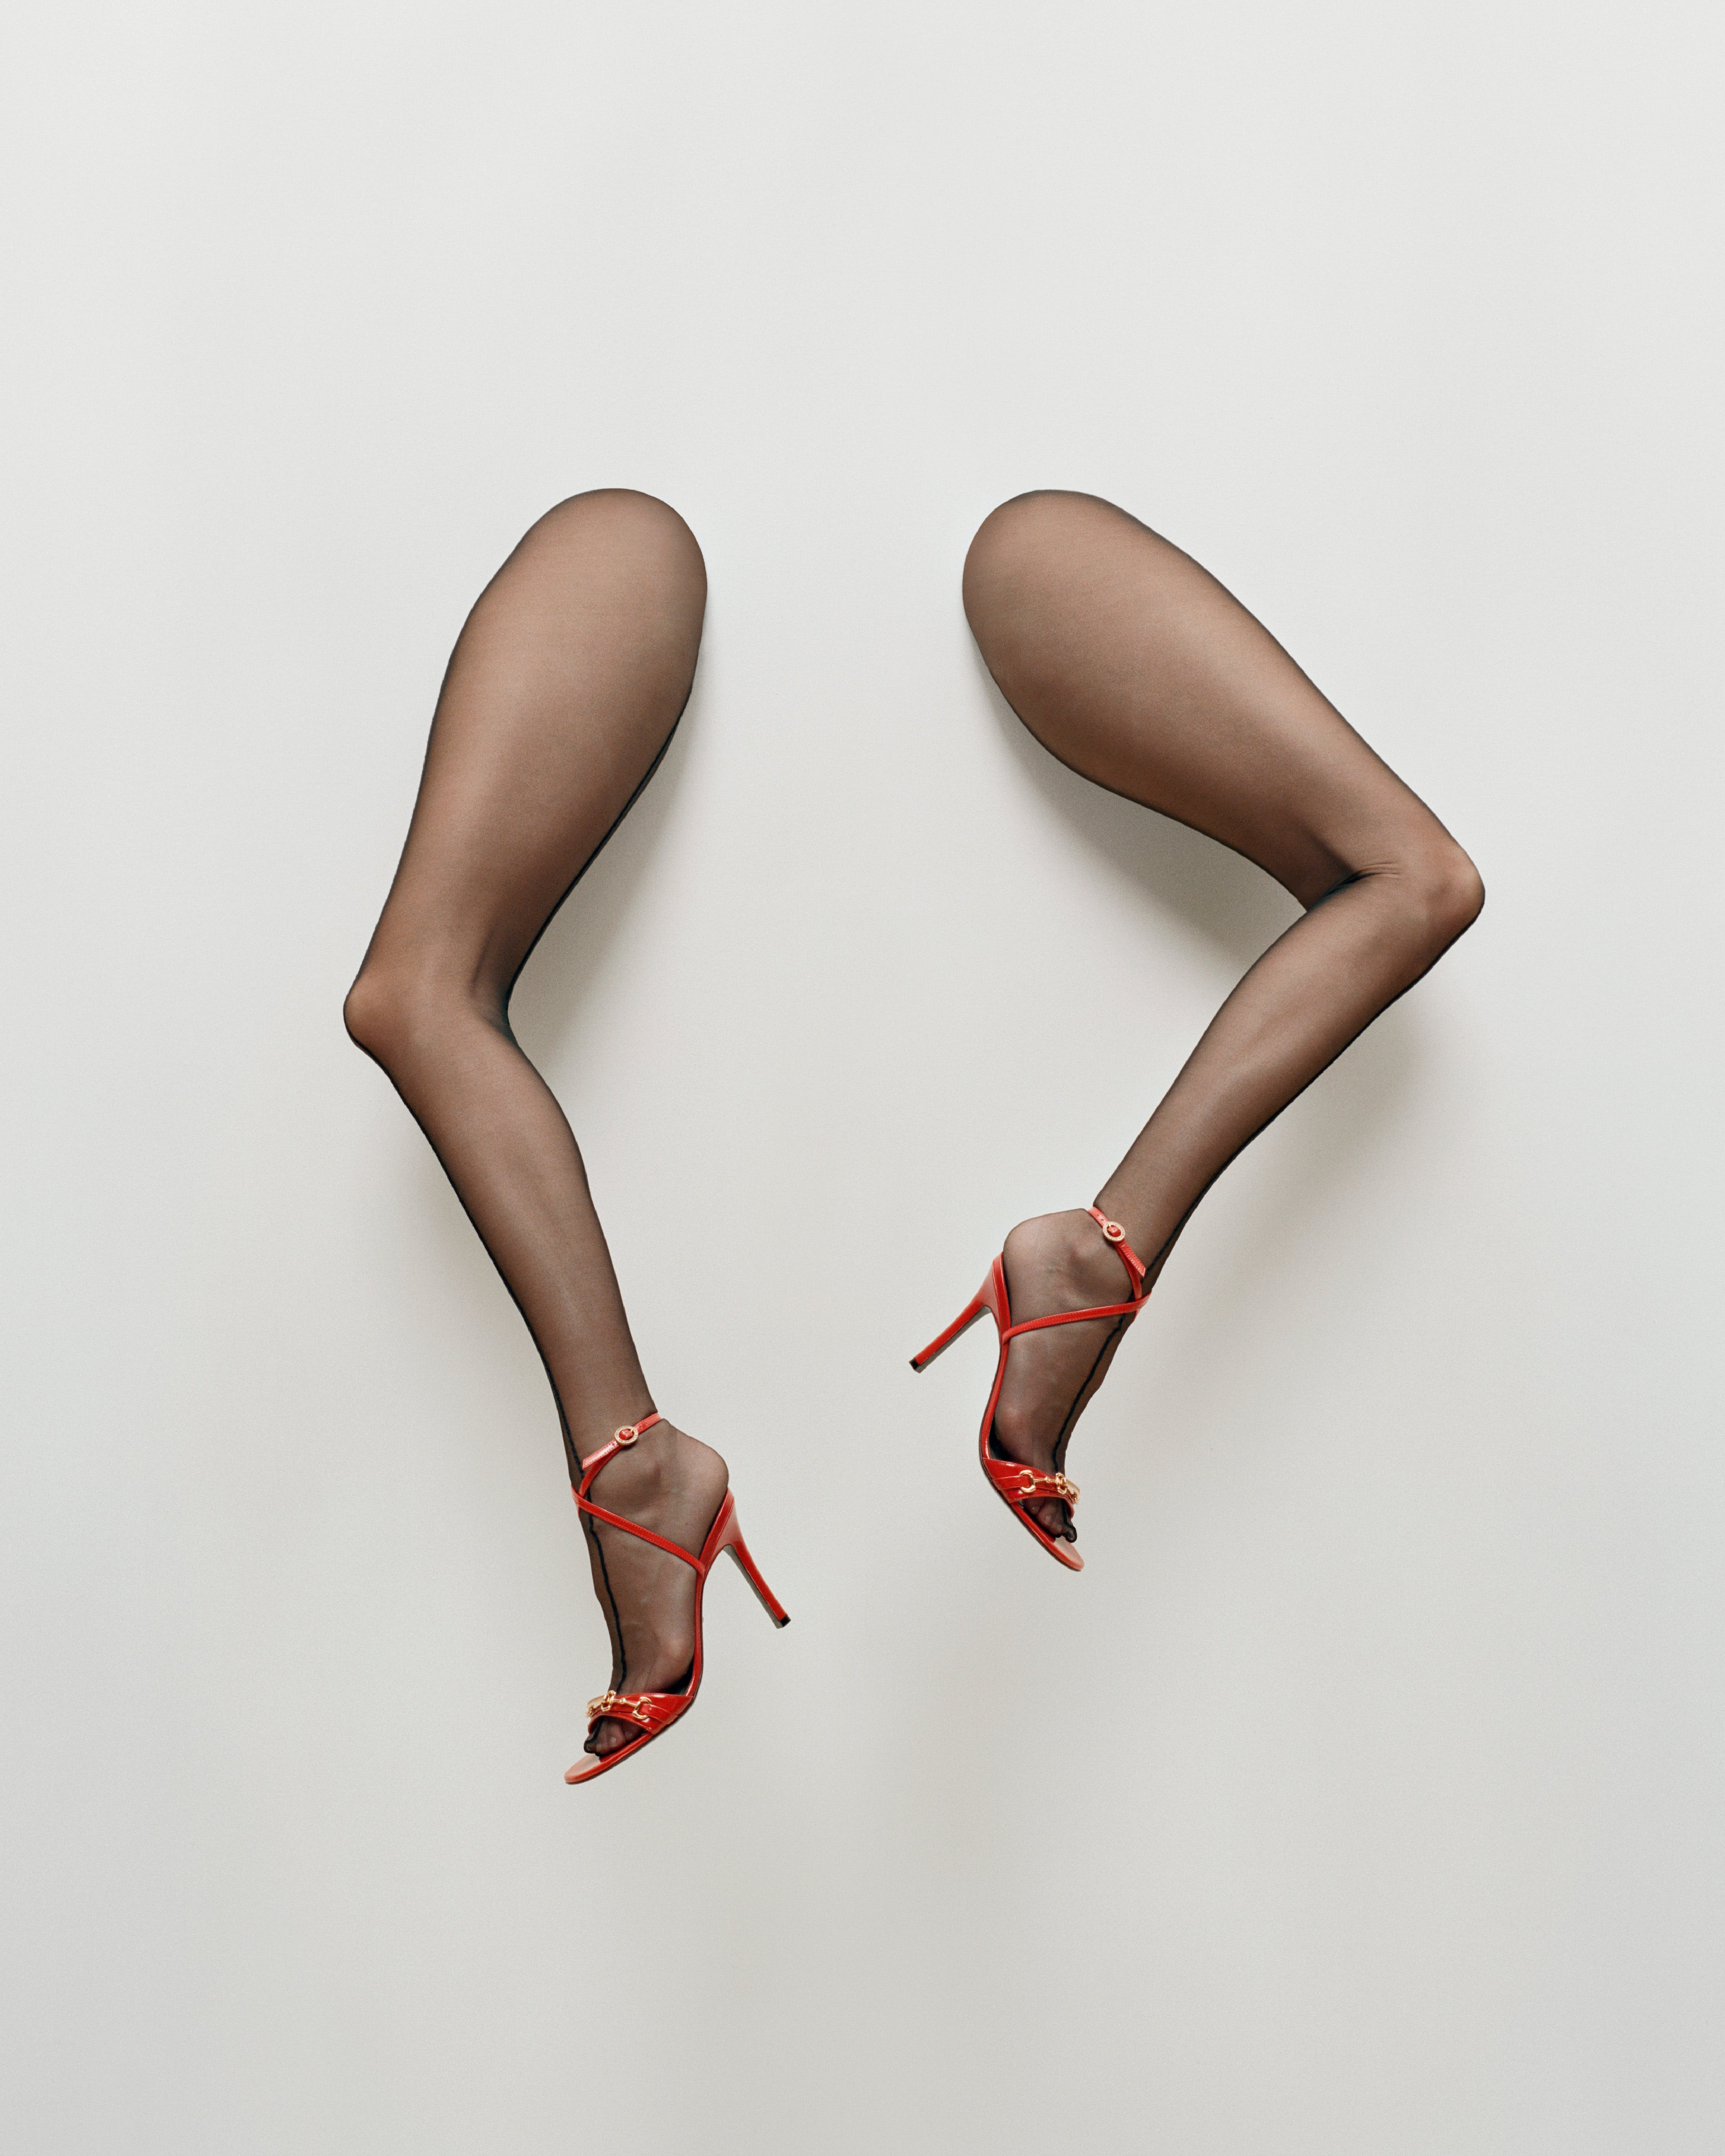 Kendall Jenner By Maurizio Cattelan Photographed by Campbell Addy For Garage Magazine Tights By Mugler Shoes by Gucci